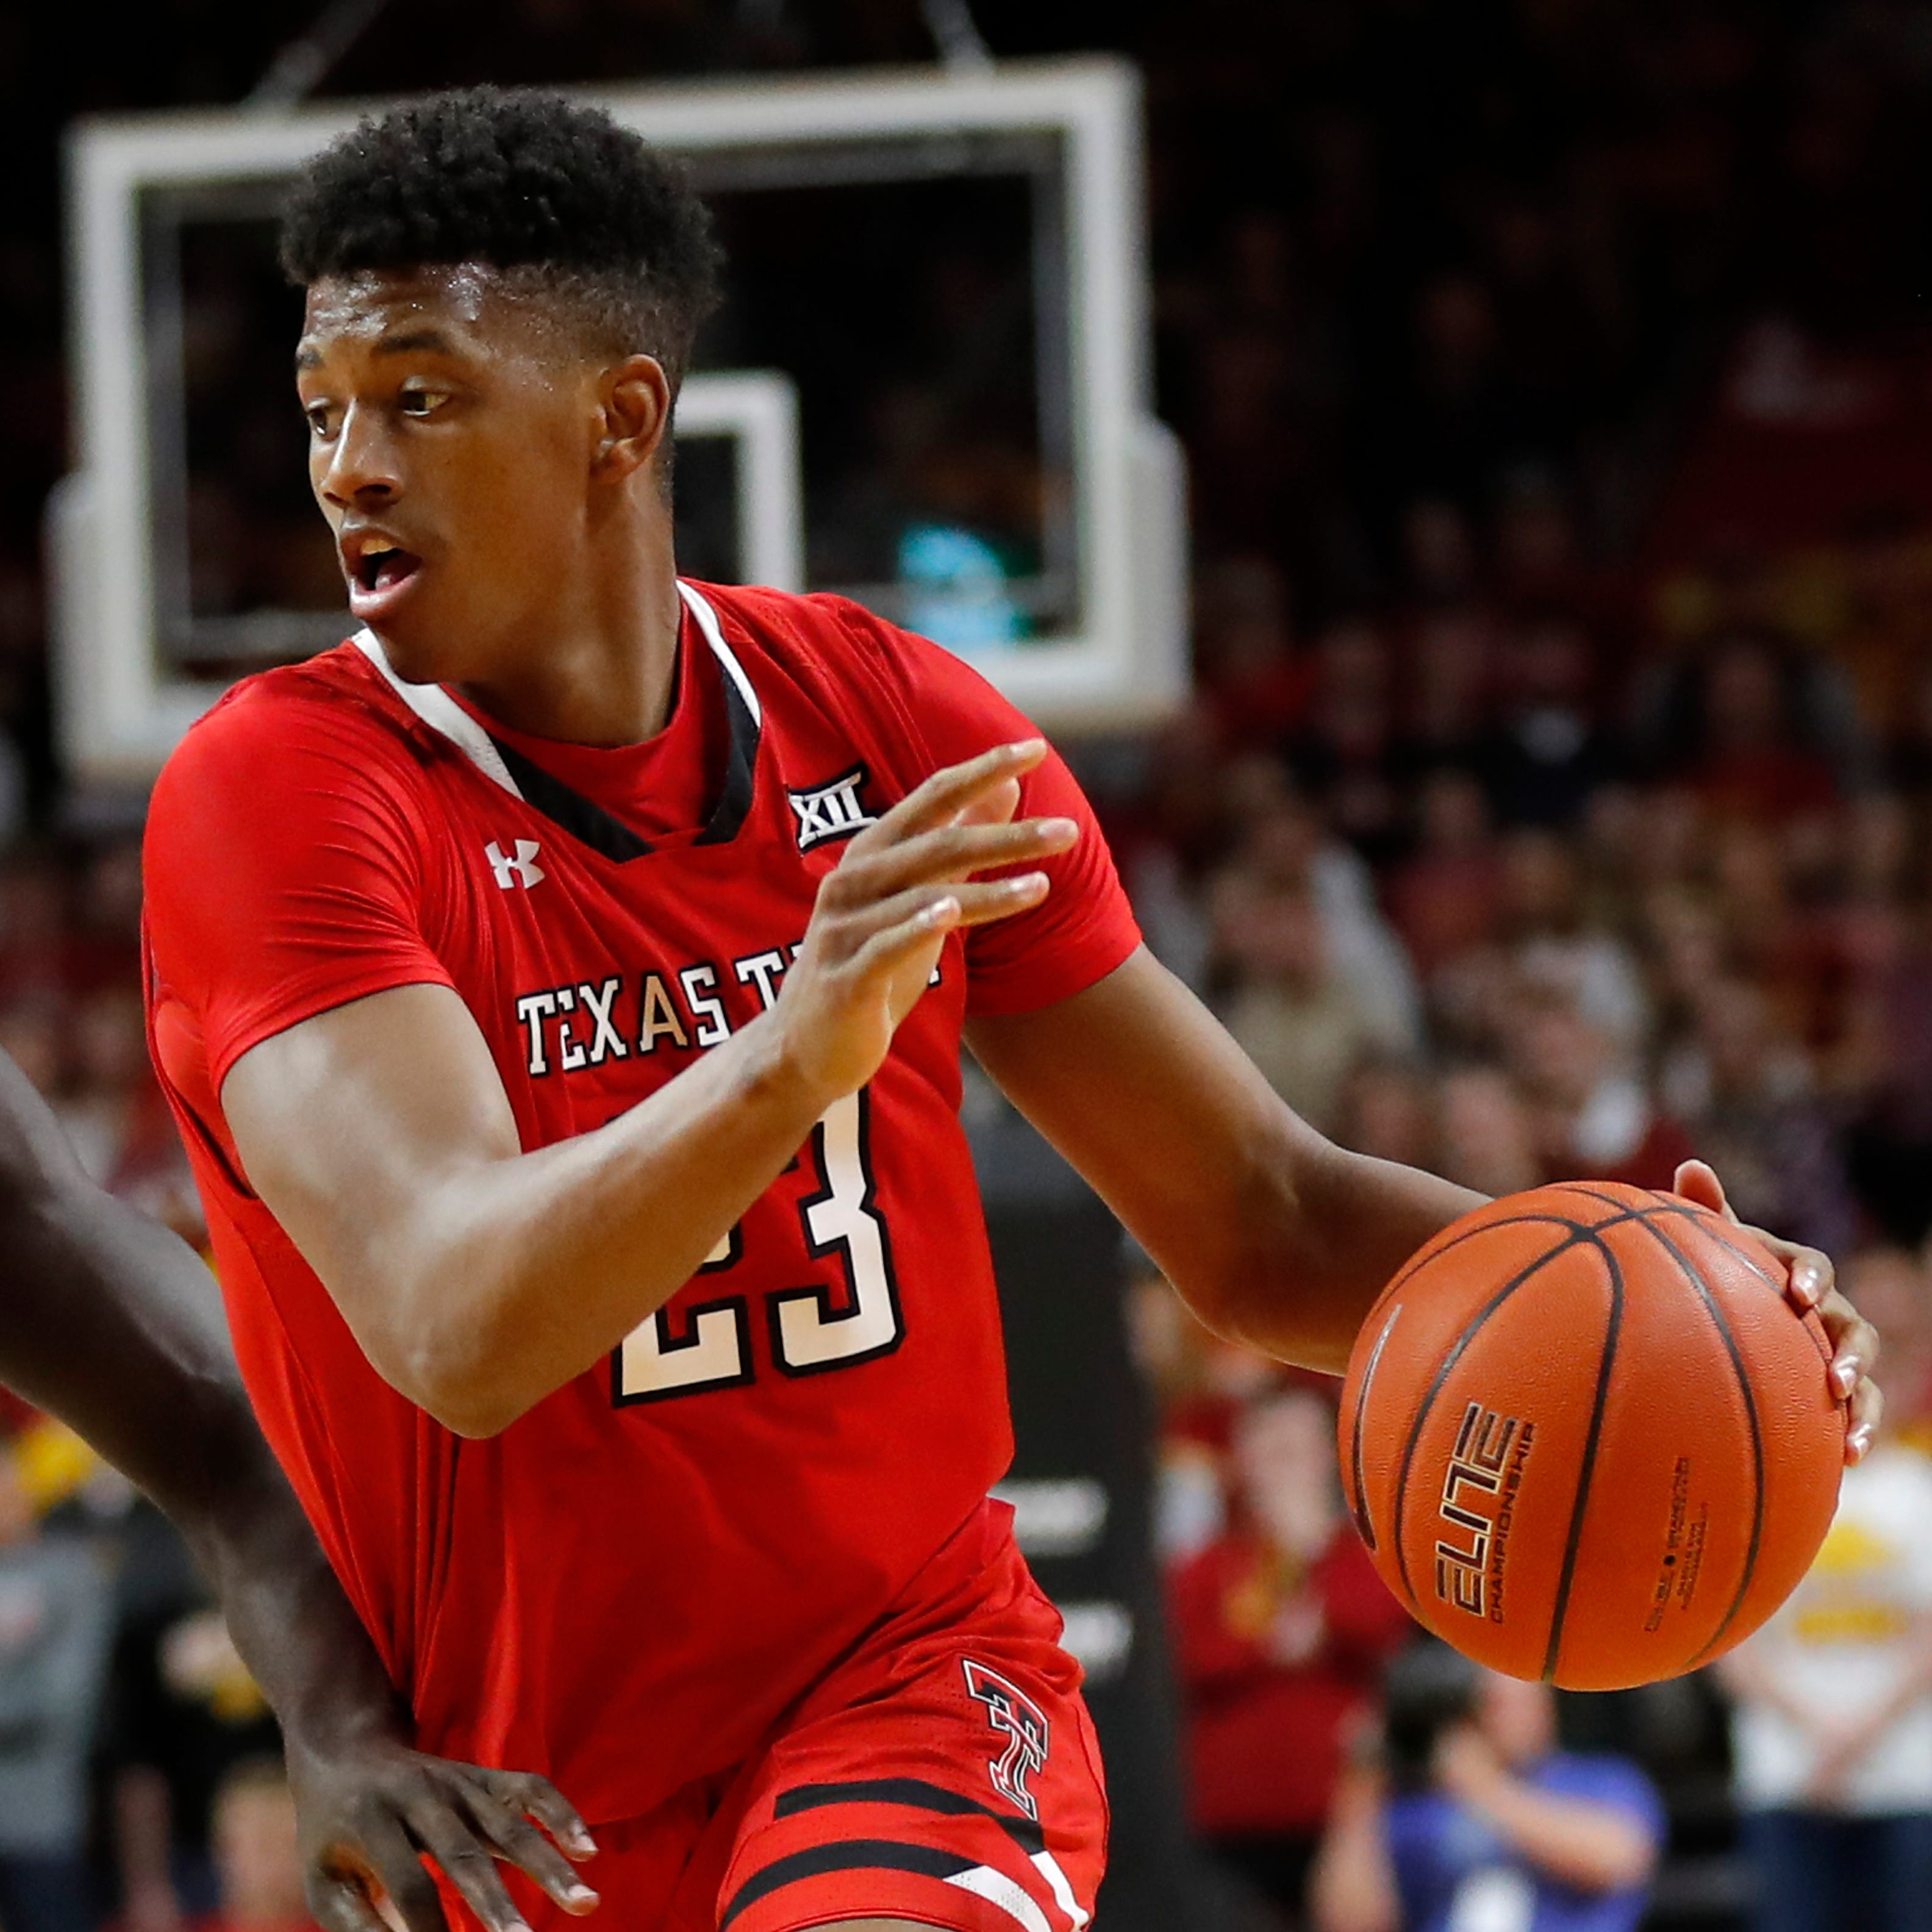 Texas Tech men's basketball ready to make a run at Big 12 tournament